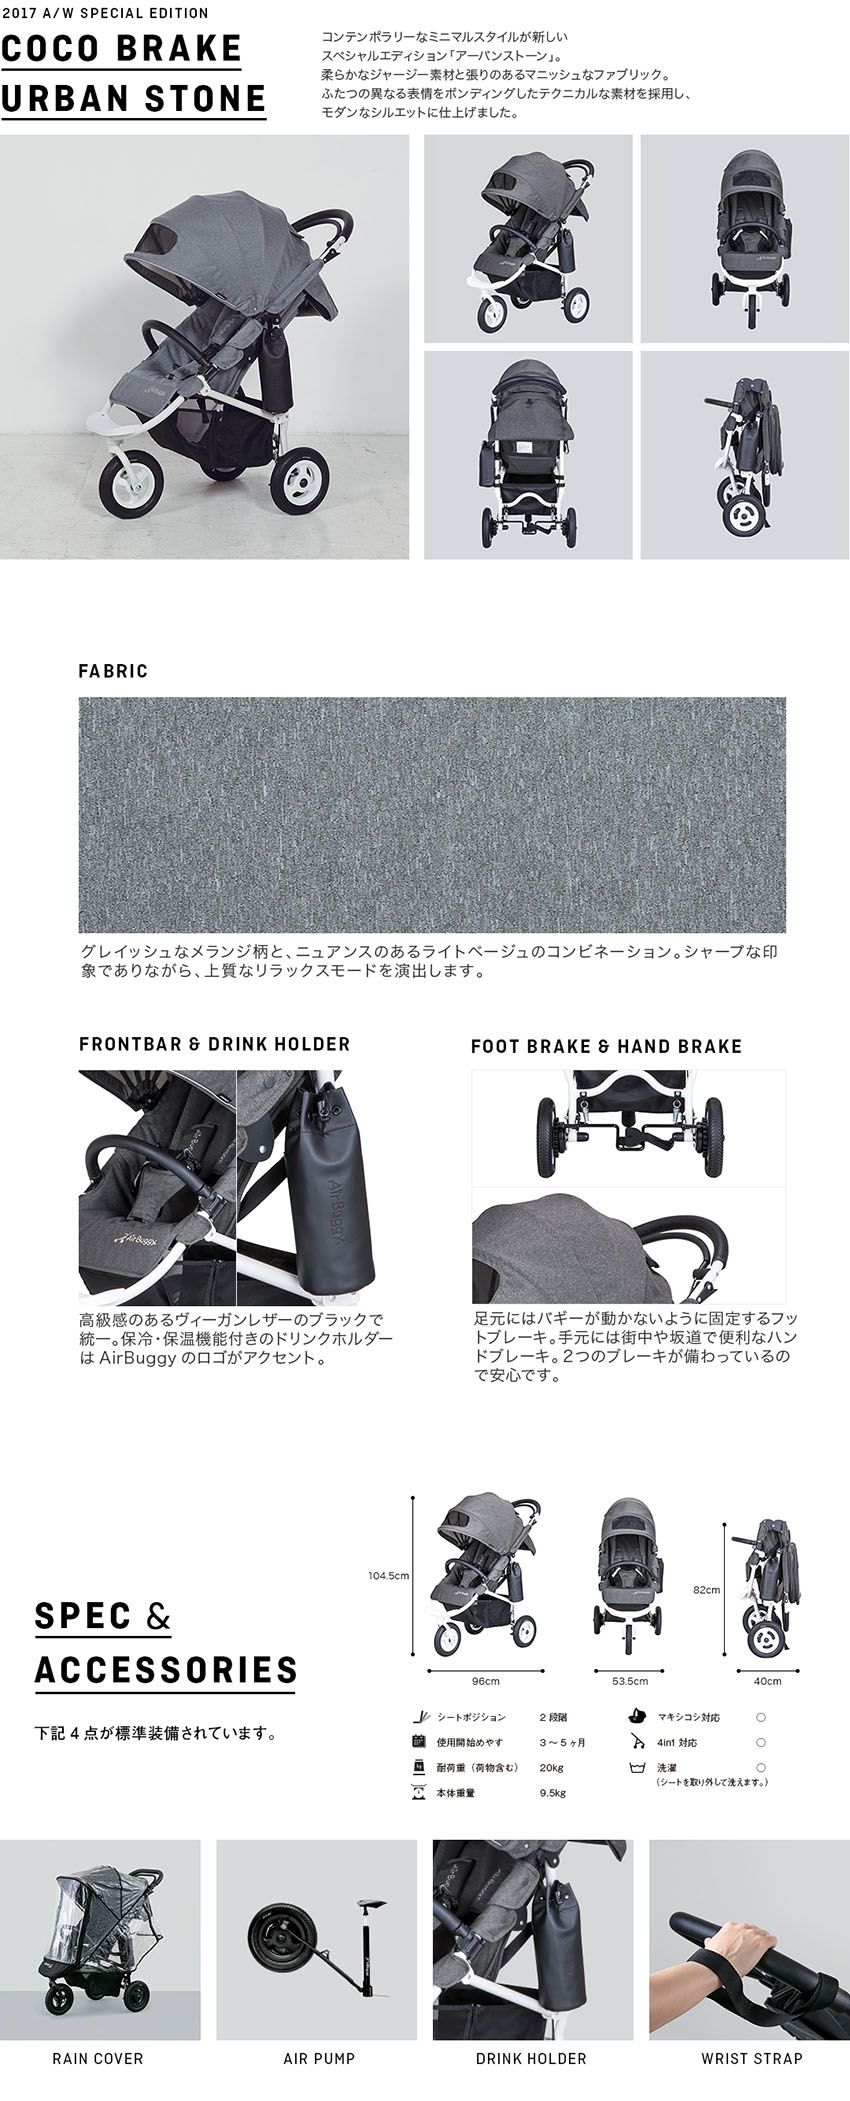 airbuggy-urban-stone-info01